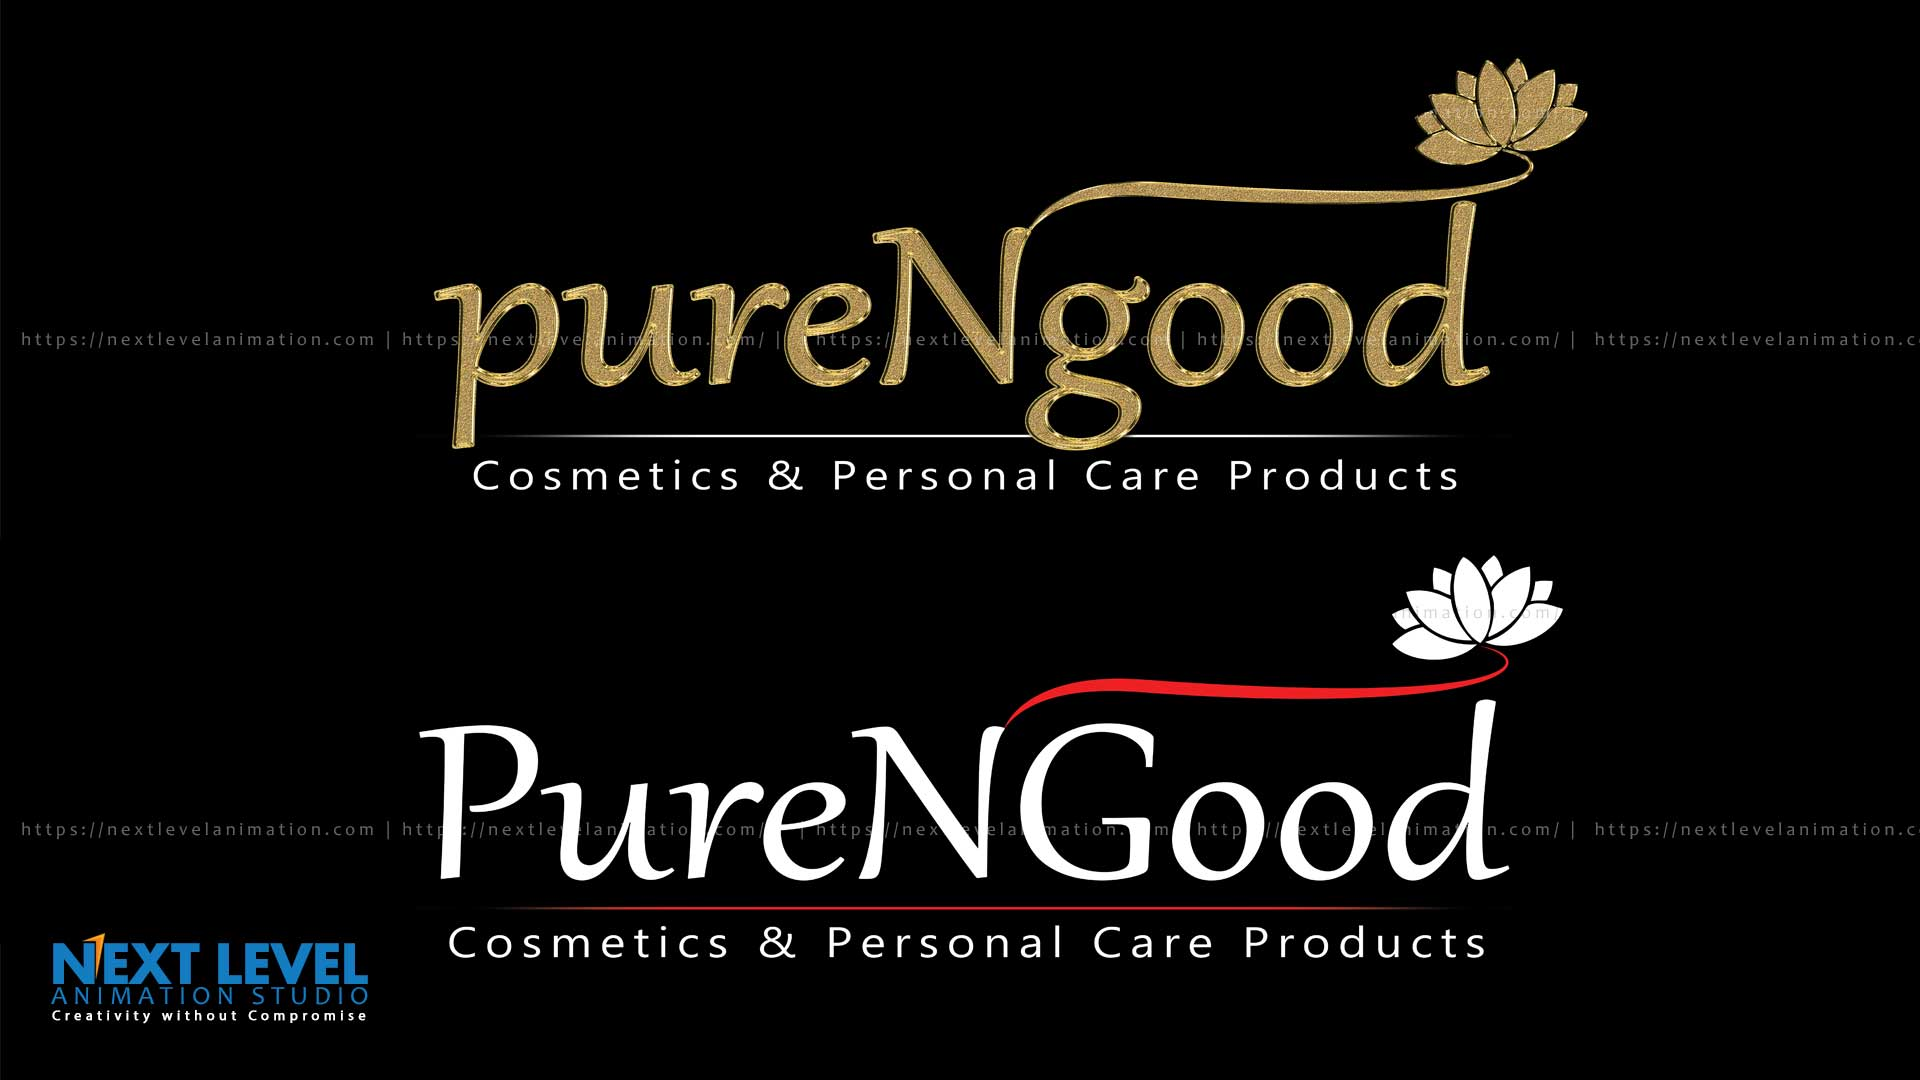 PureNGood-Bangalore | Cosmetics & personal care products